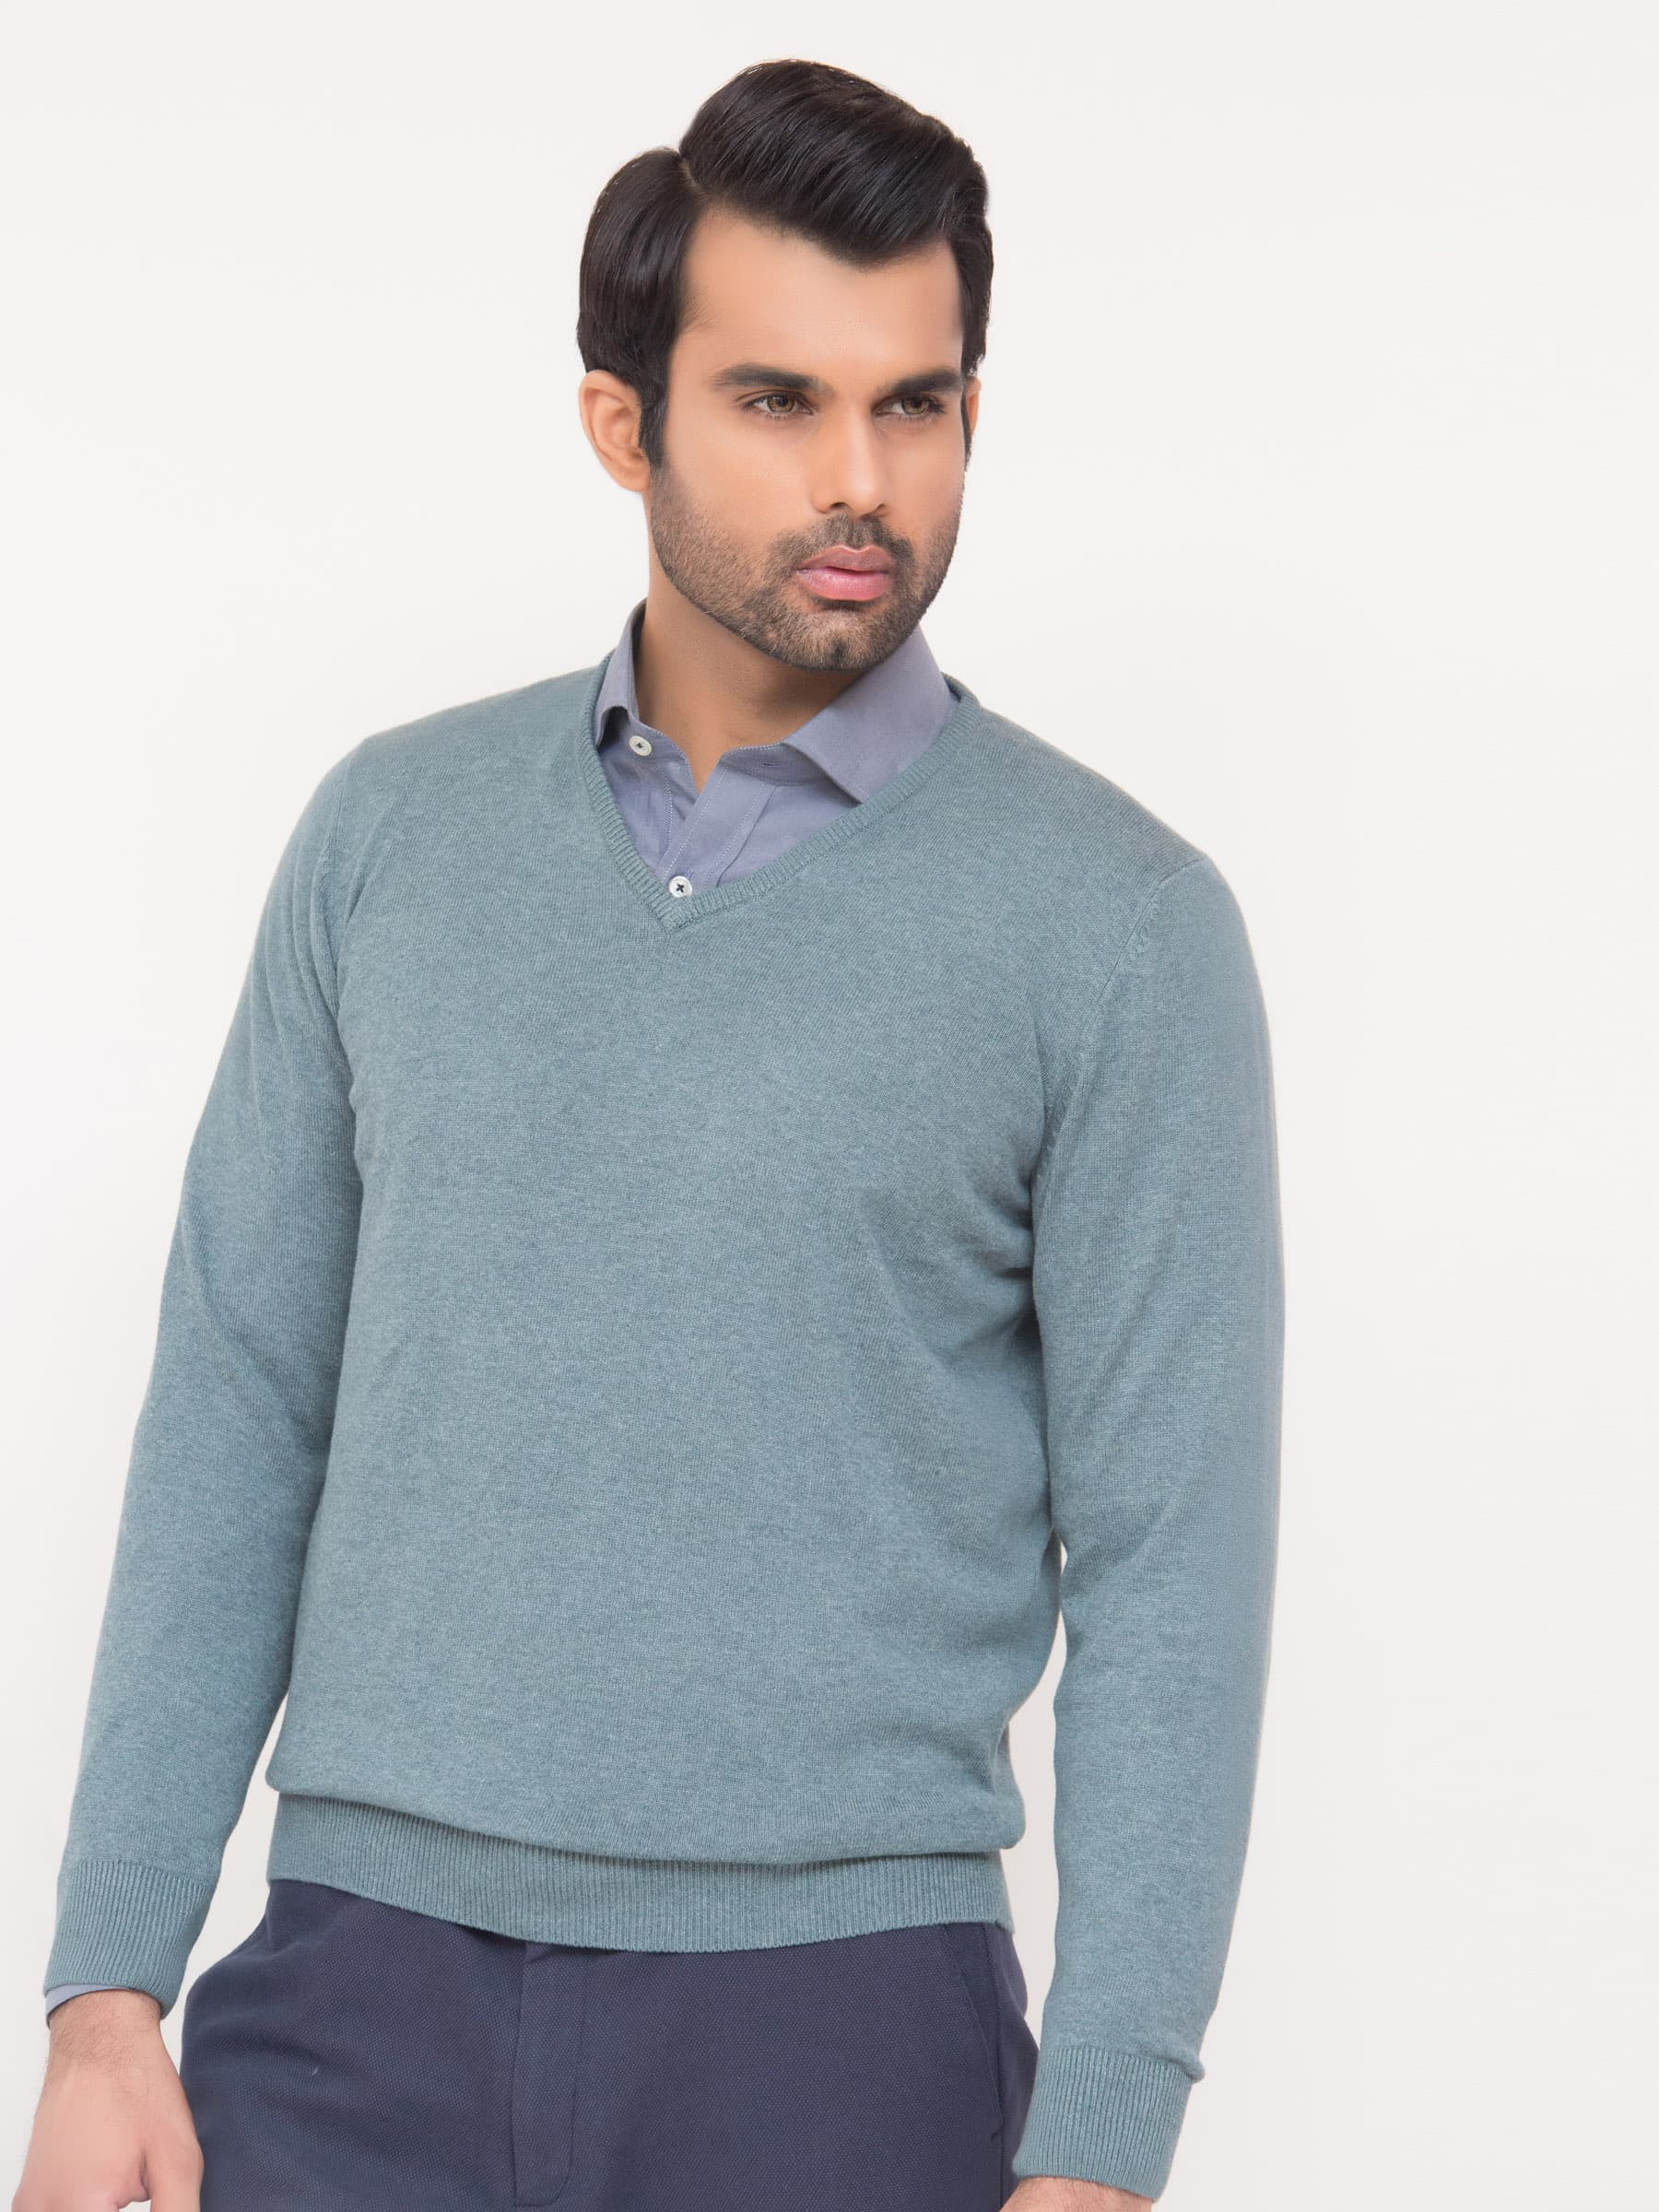 Sea Green V-Neck Sweater | Brumano